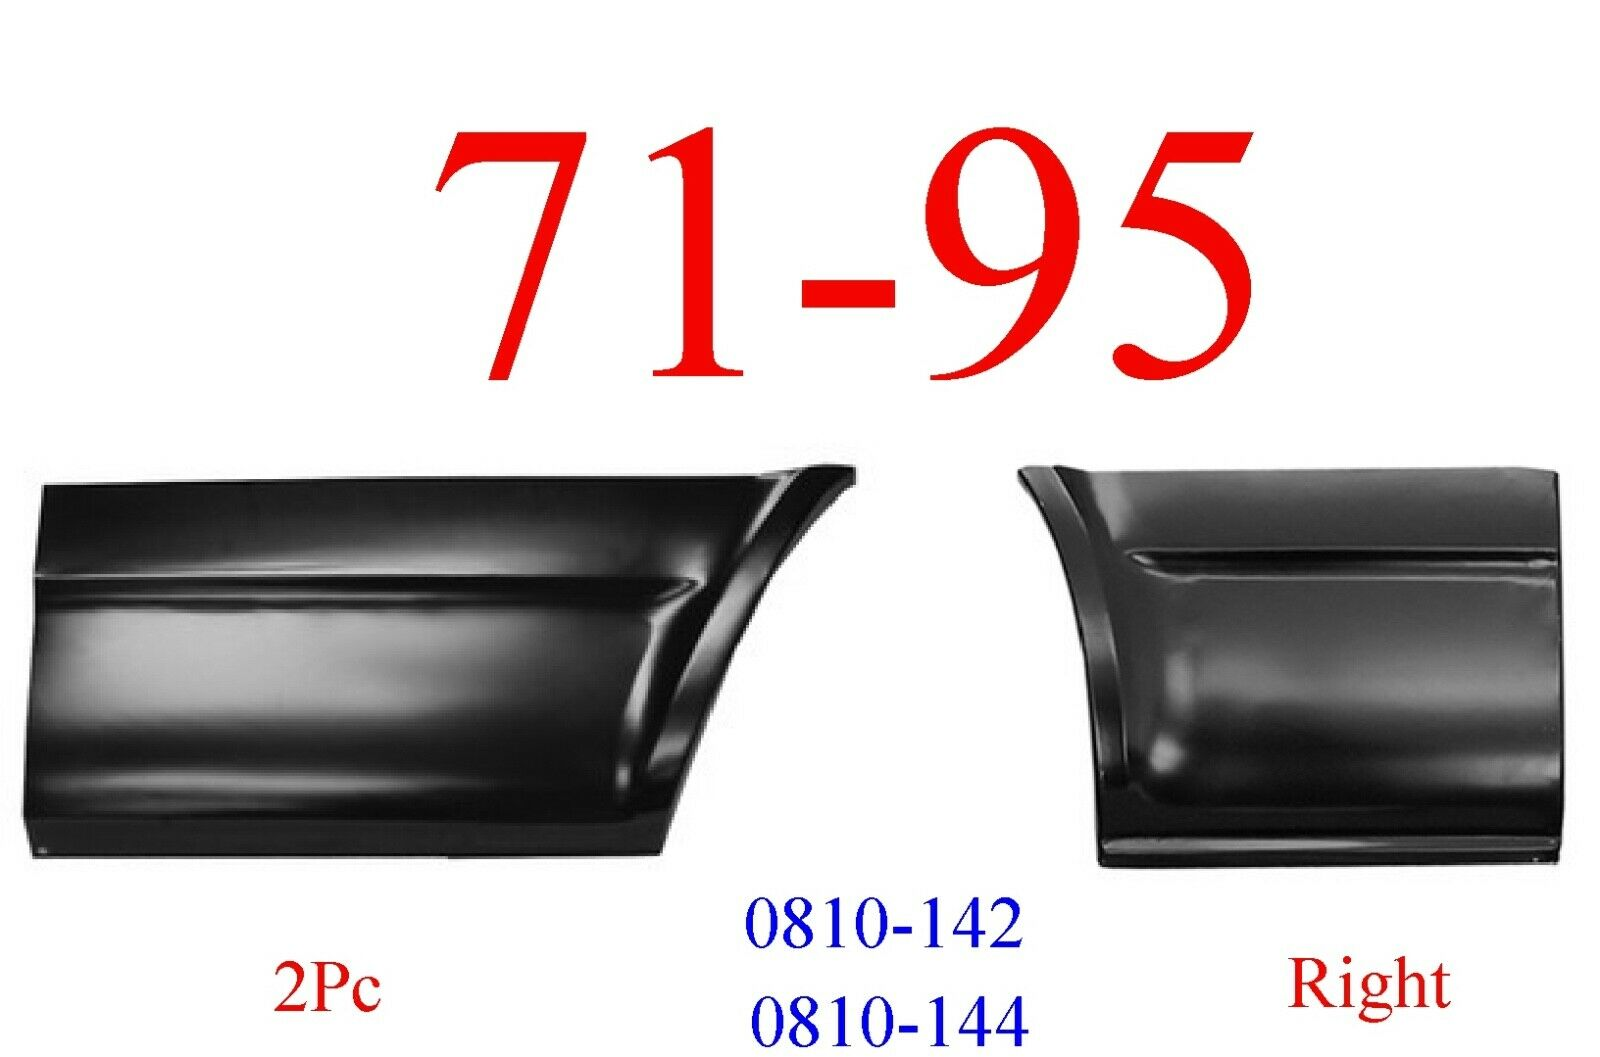 2Pc 71-95 Chevy Van Right Lower Front & Rear Quarter Panel Set